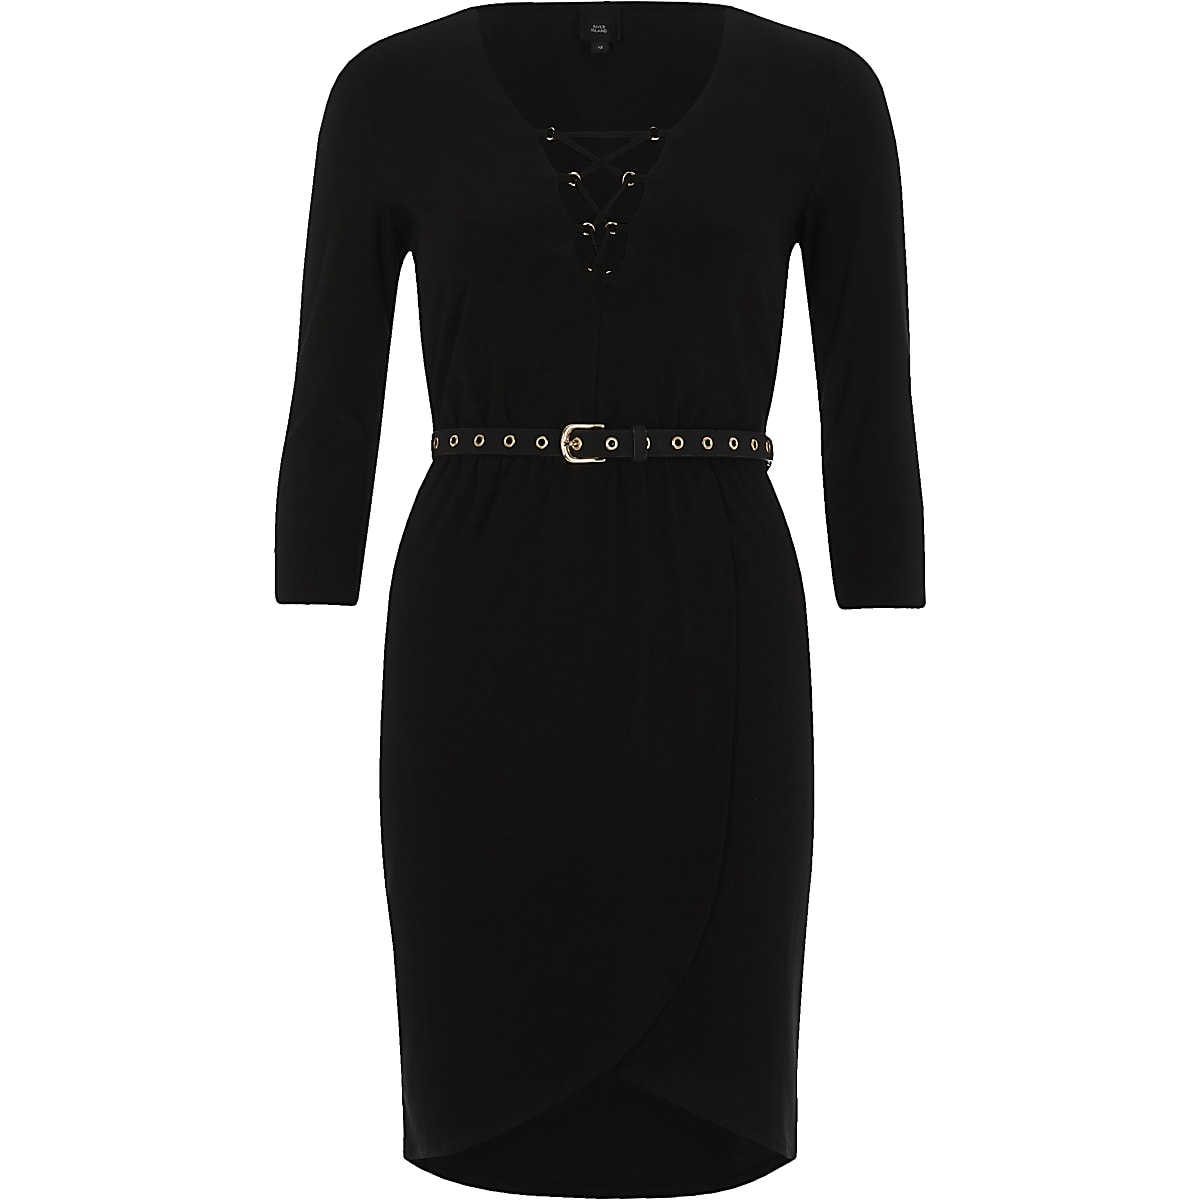 Black lace-up front belted bodycon dress